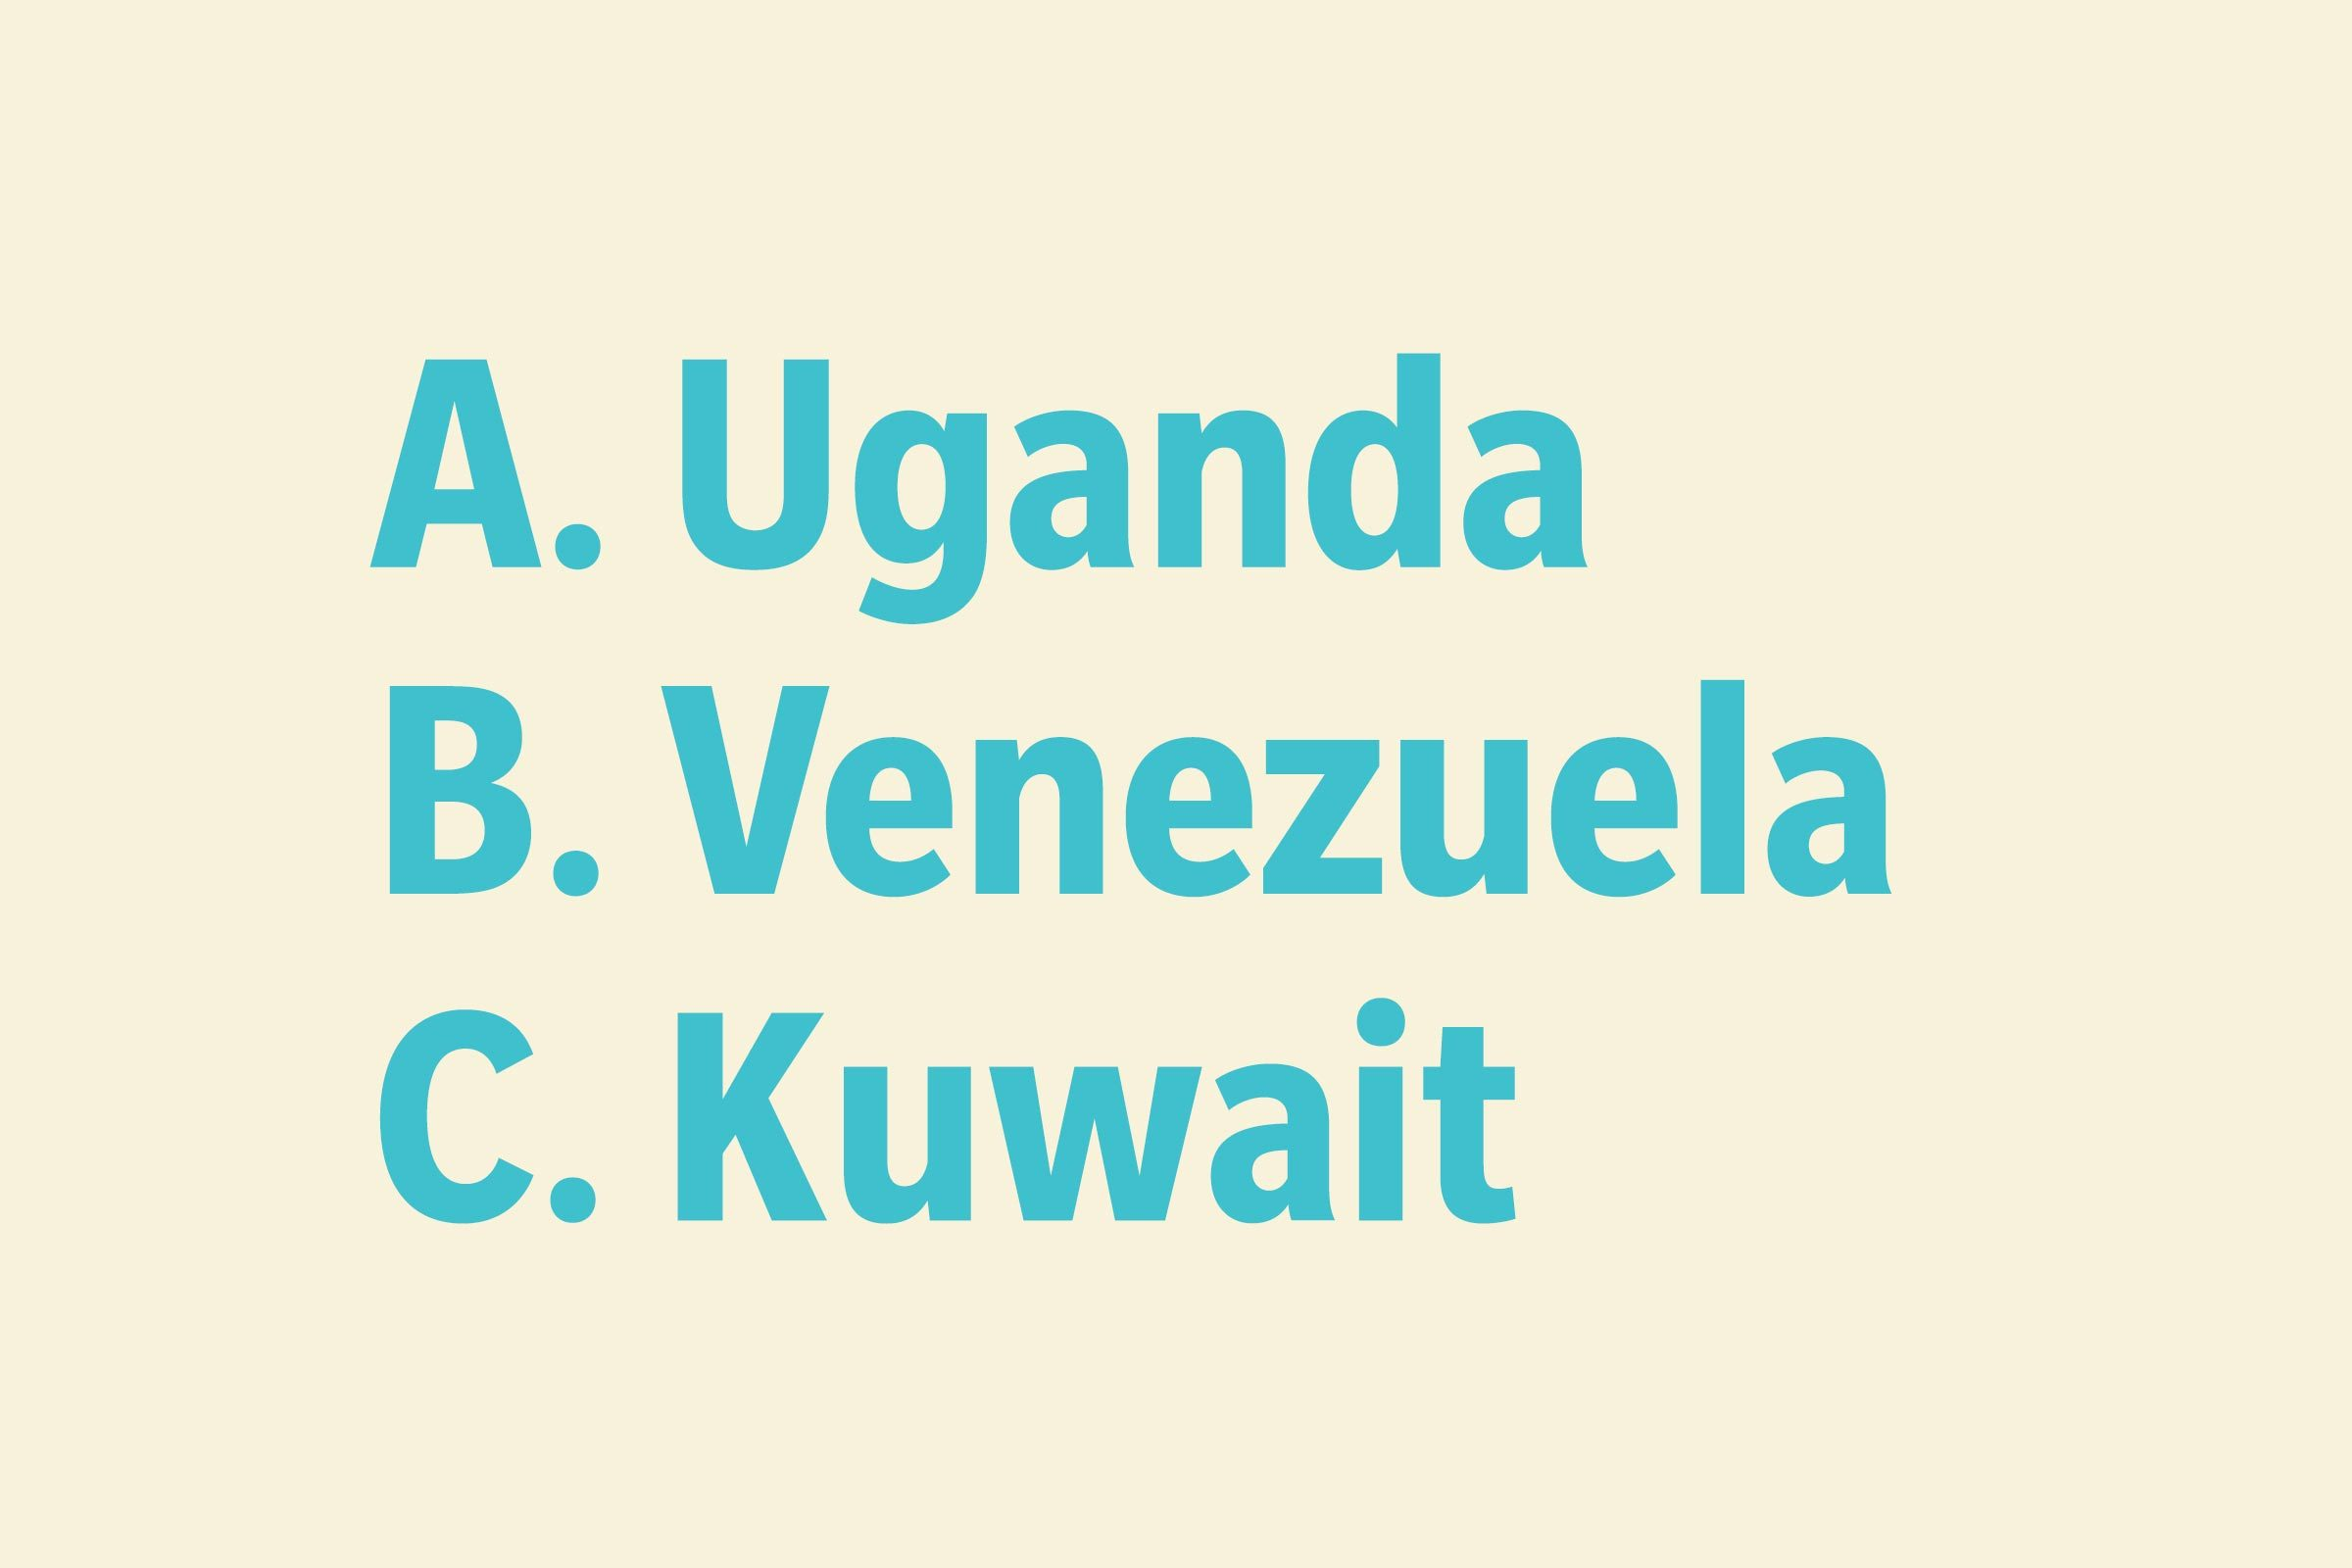 Kampala is the capital of which country?